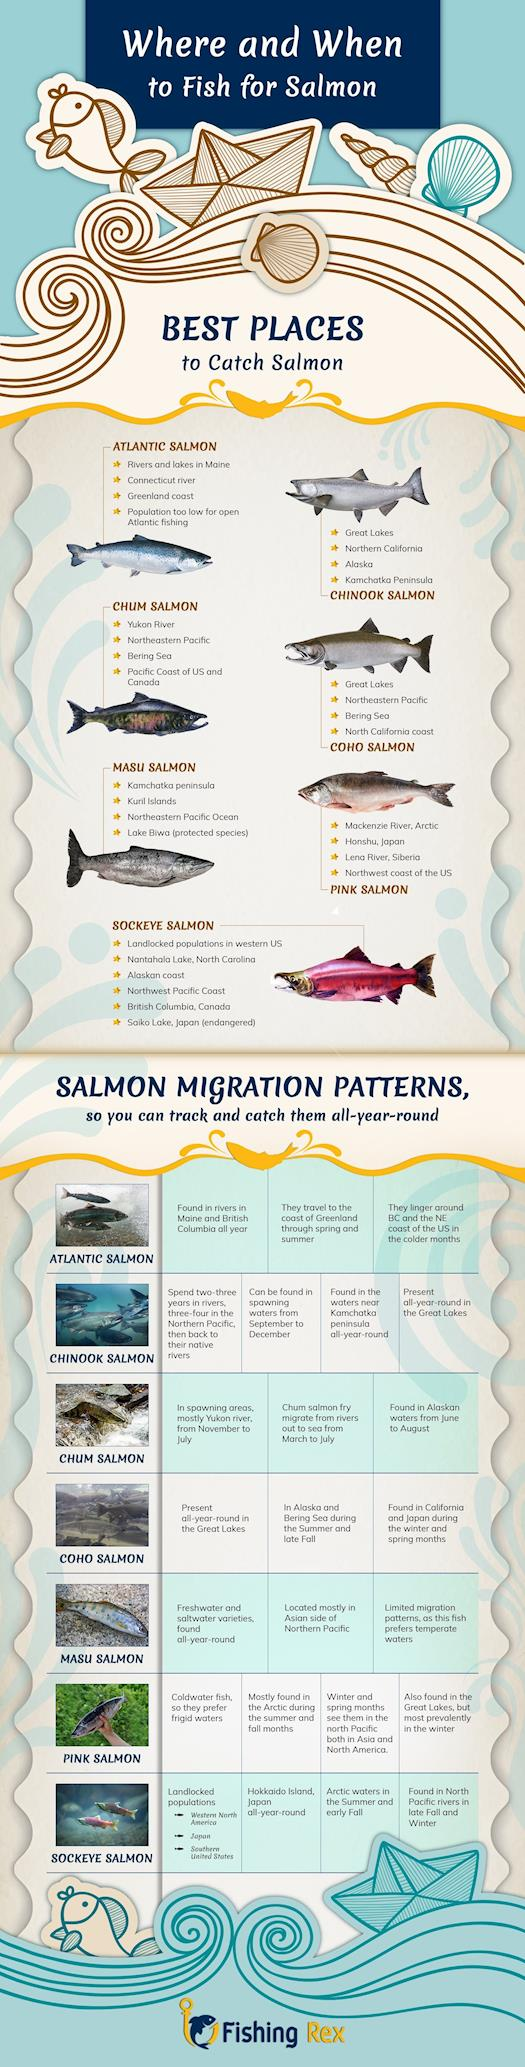 Where and When to Fish for Salmon